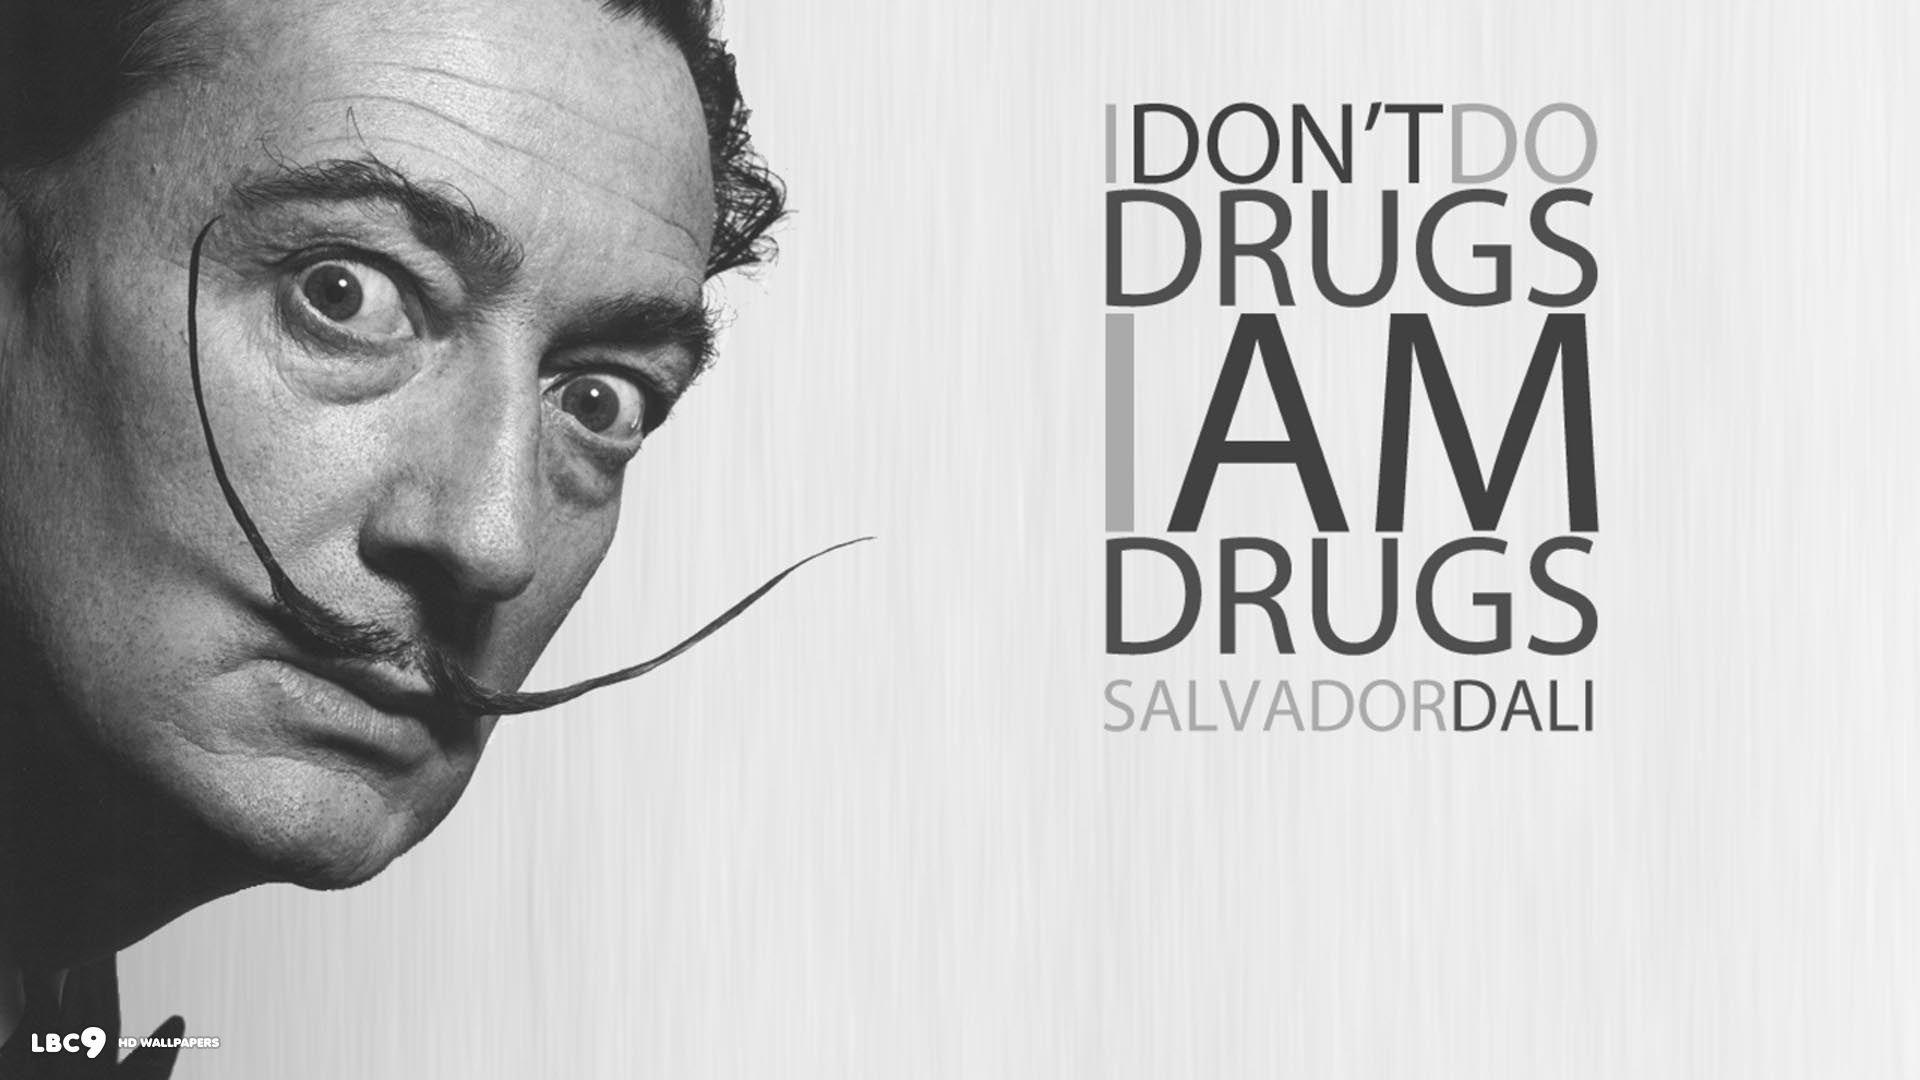 salvador dali wallpaper 29/38 | paintings hd backgrounds